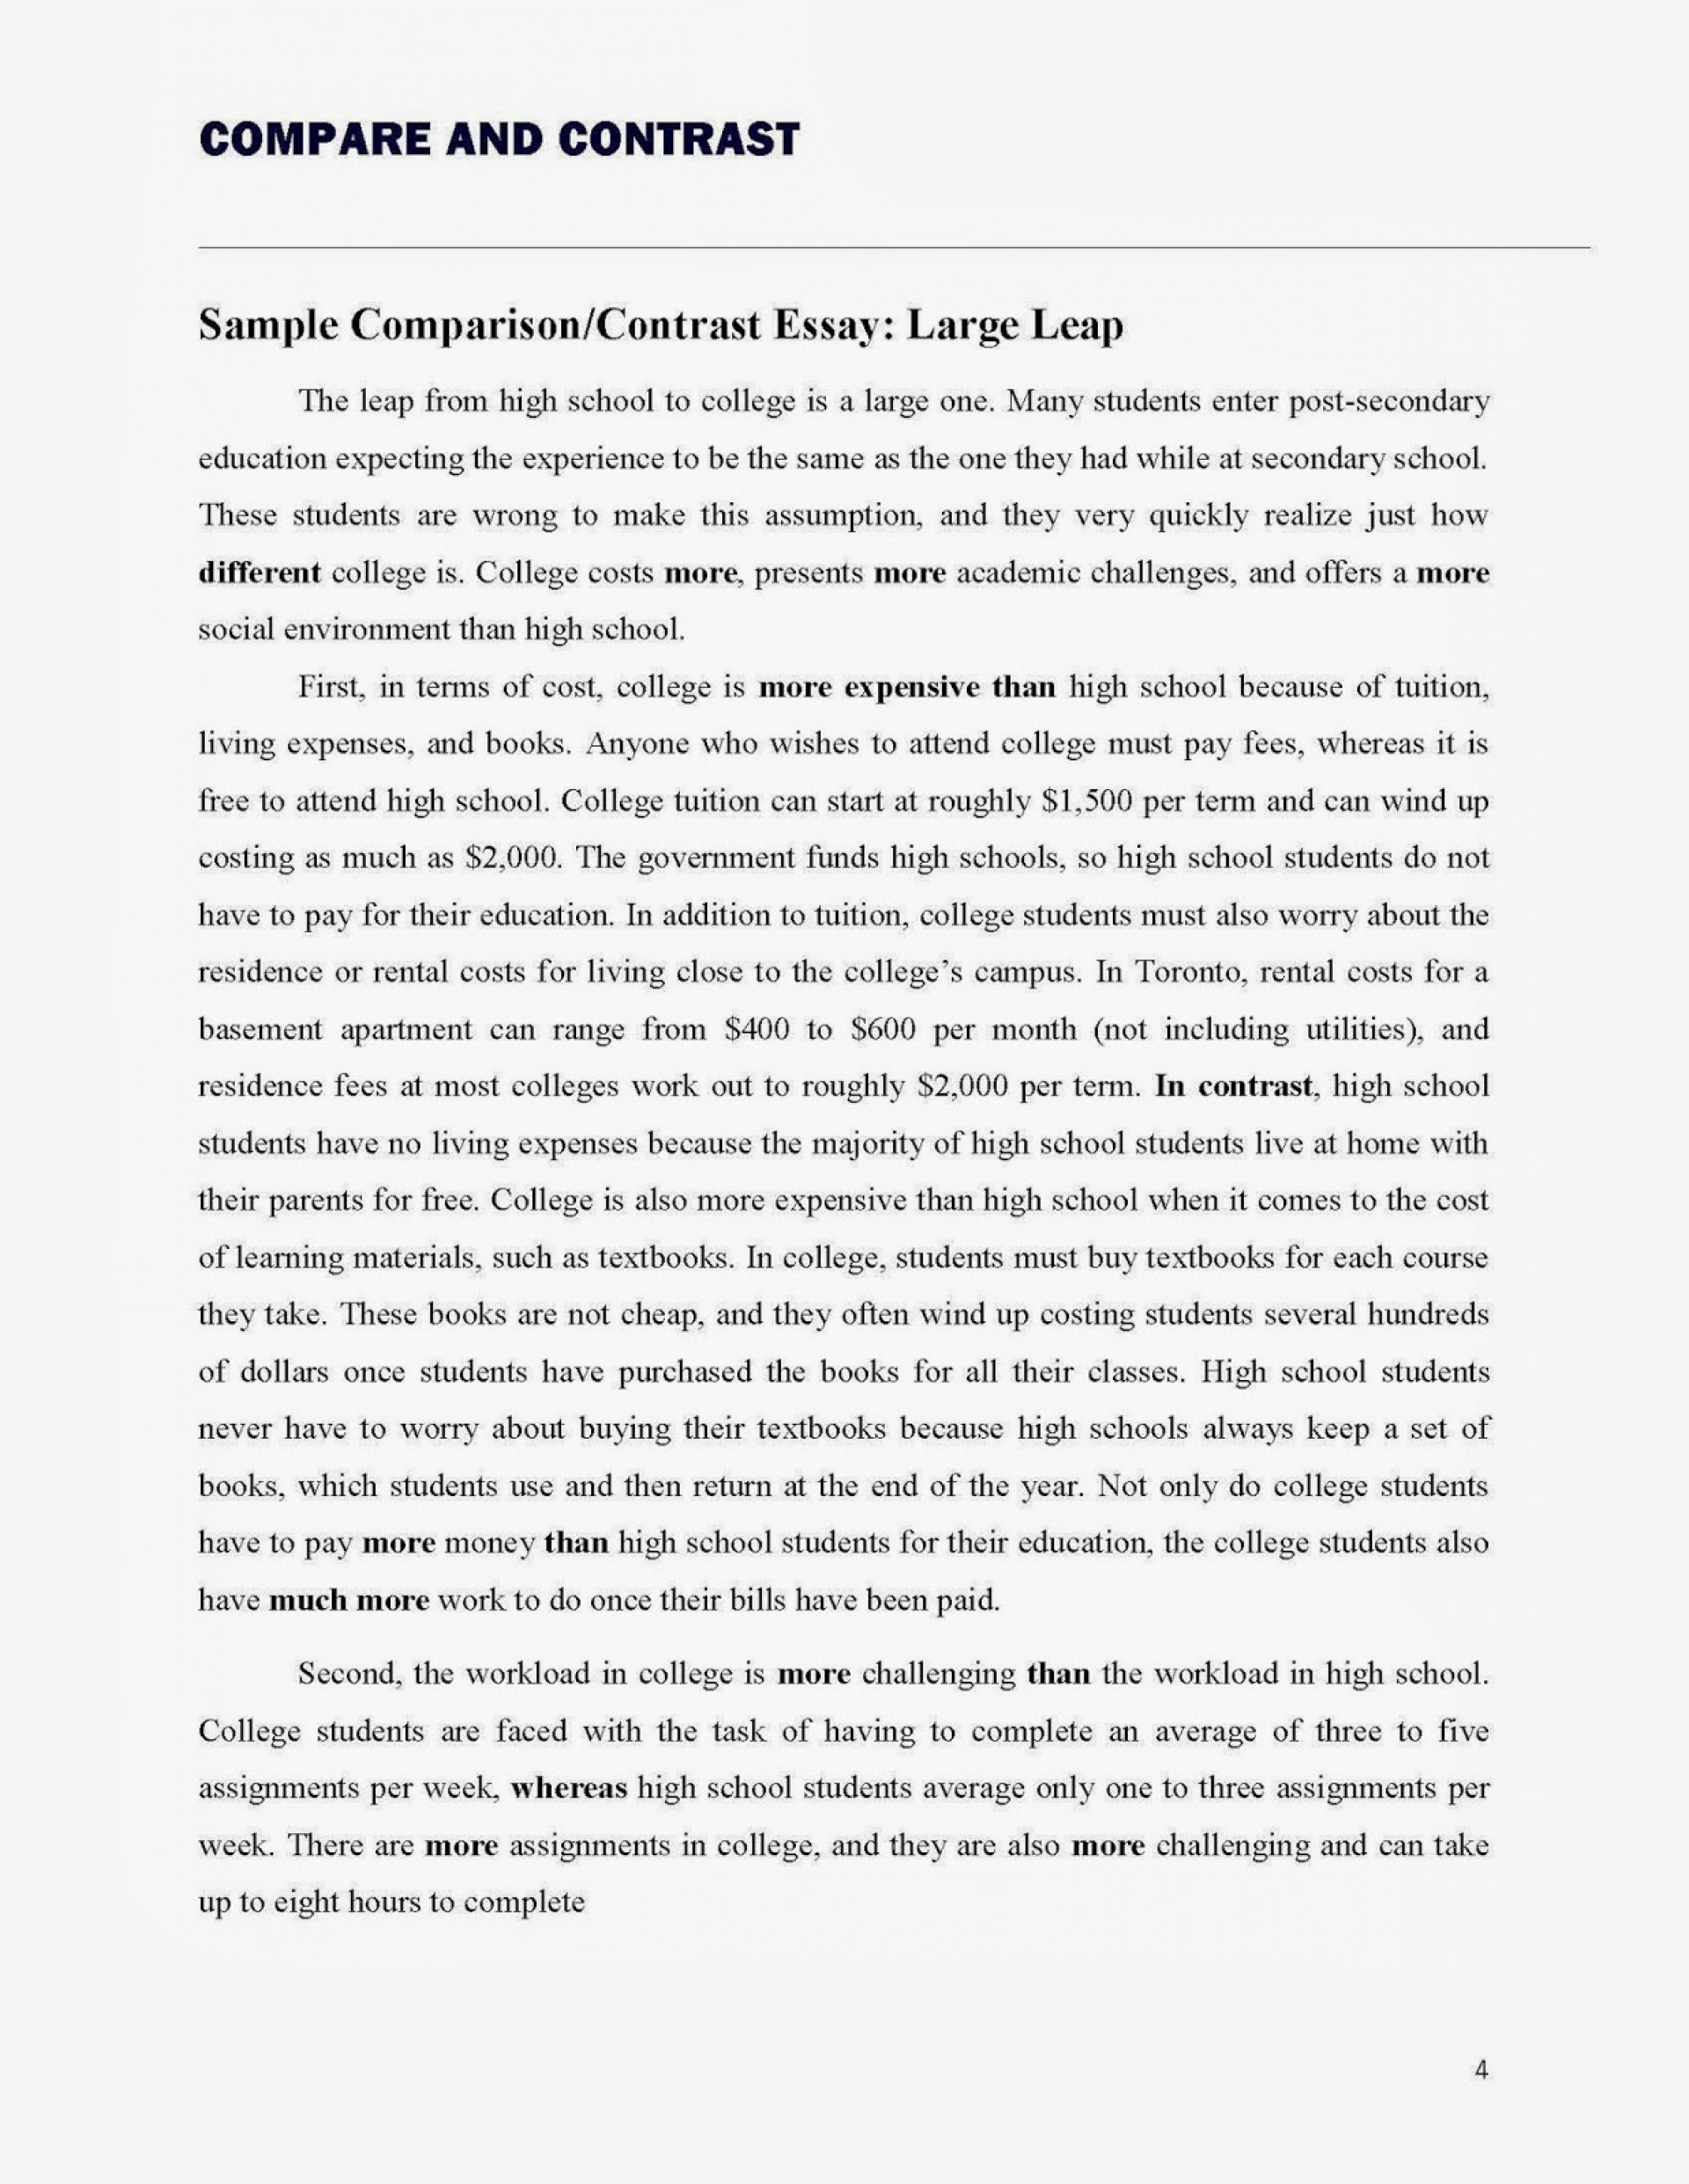 010 Ucf Essay Prompt Example Compare2band2bcontrast2bessay Page 4 Stunning Questions Prompts 2018 1920